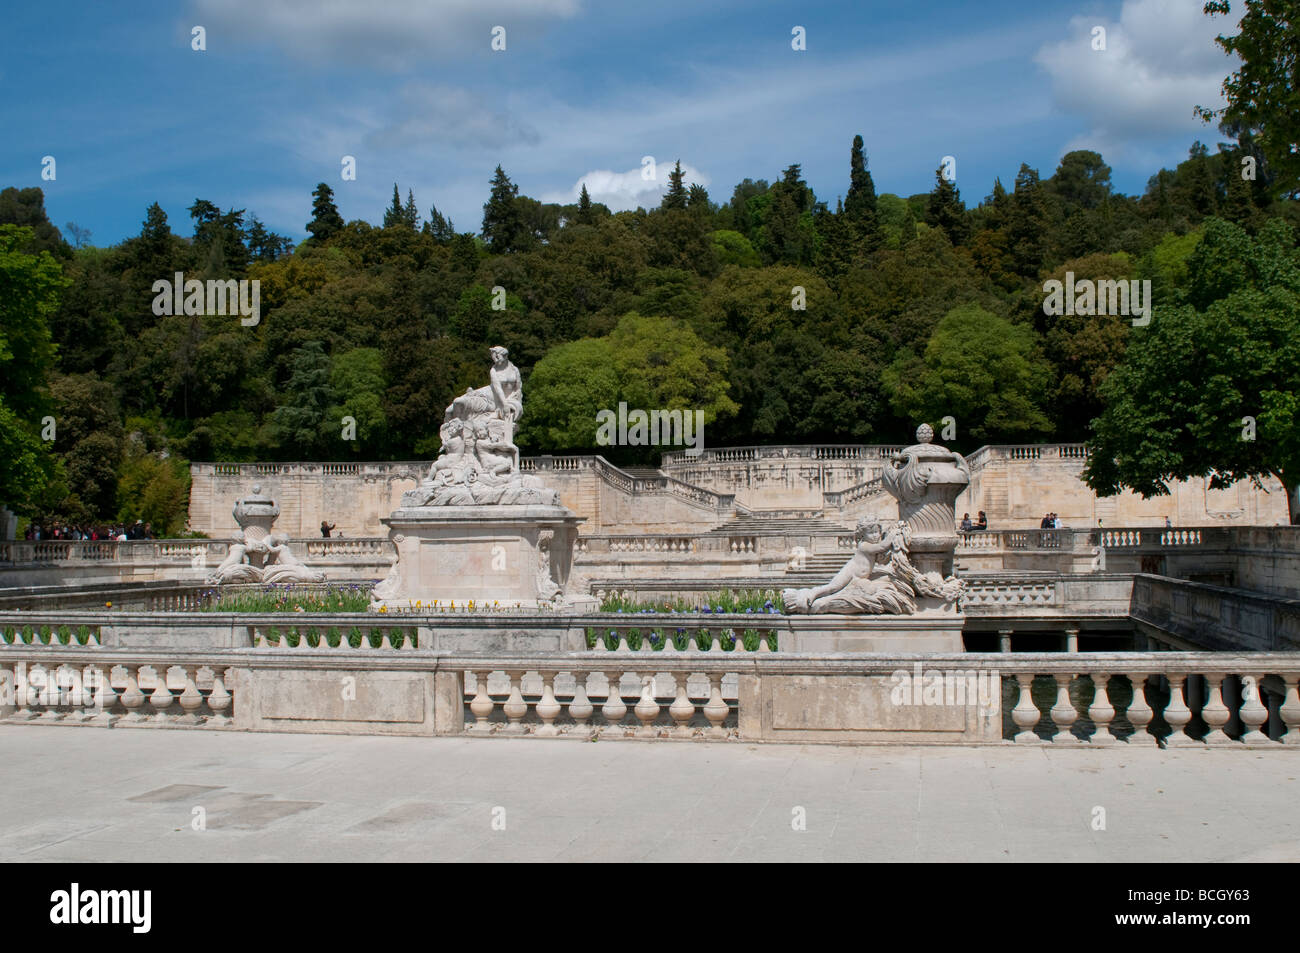 Jardin de la fontaine fountain garden nimes france stock for France jardin